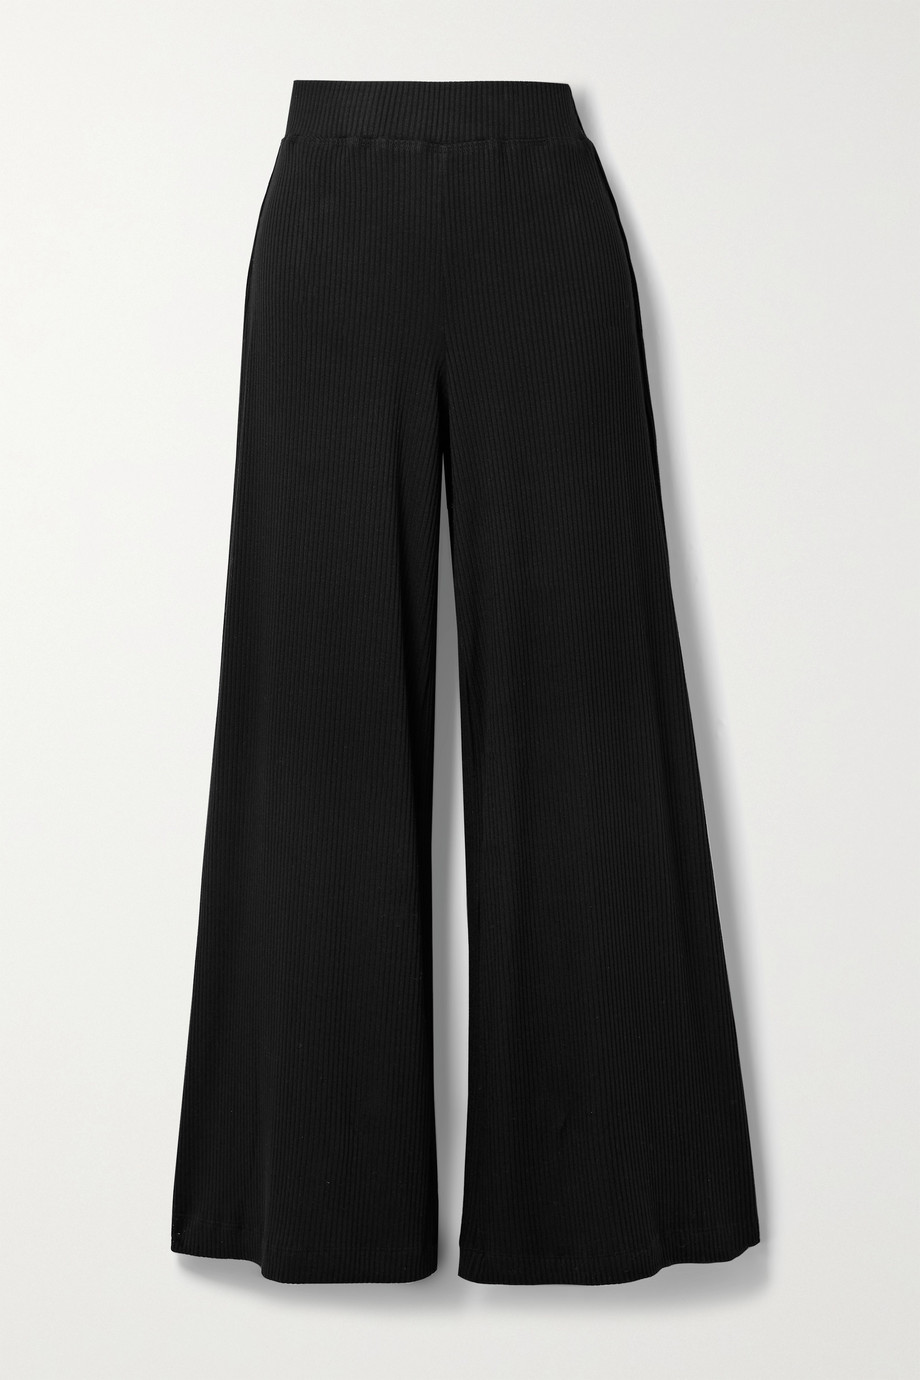 L'AGENCE Crawford ribbed stretch-modal wide-leg pants